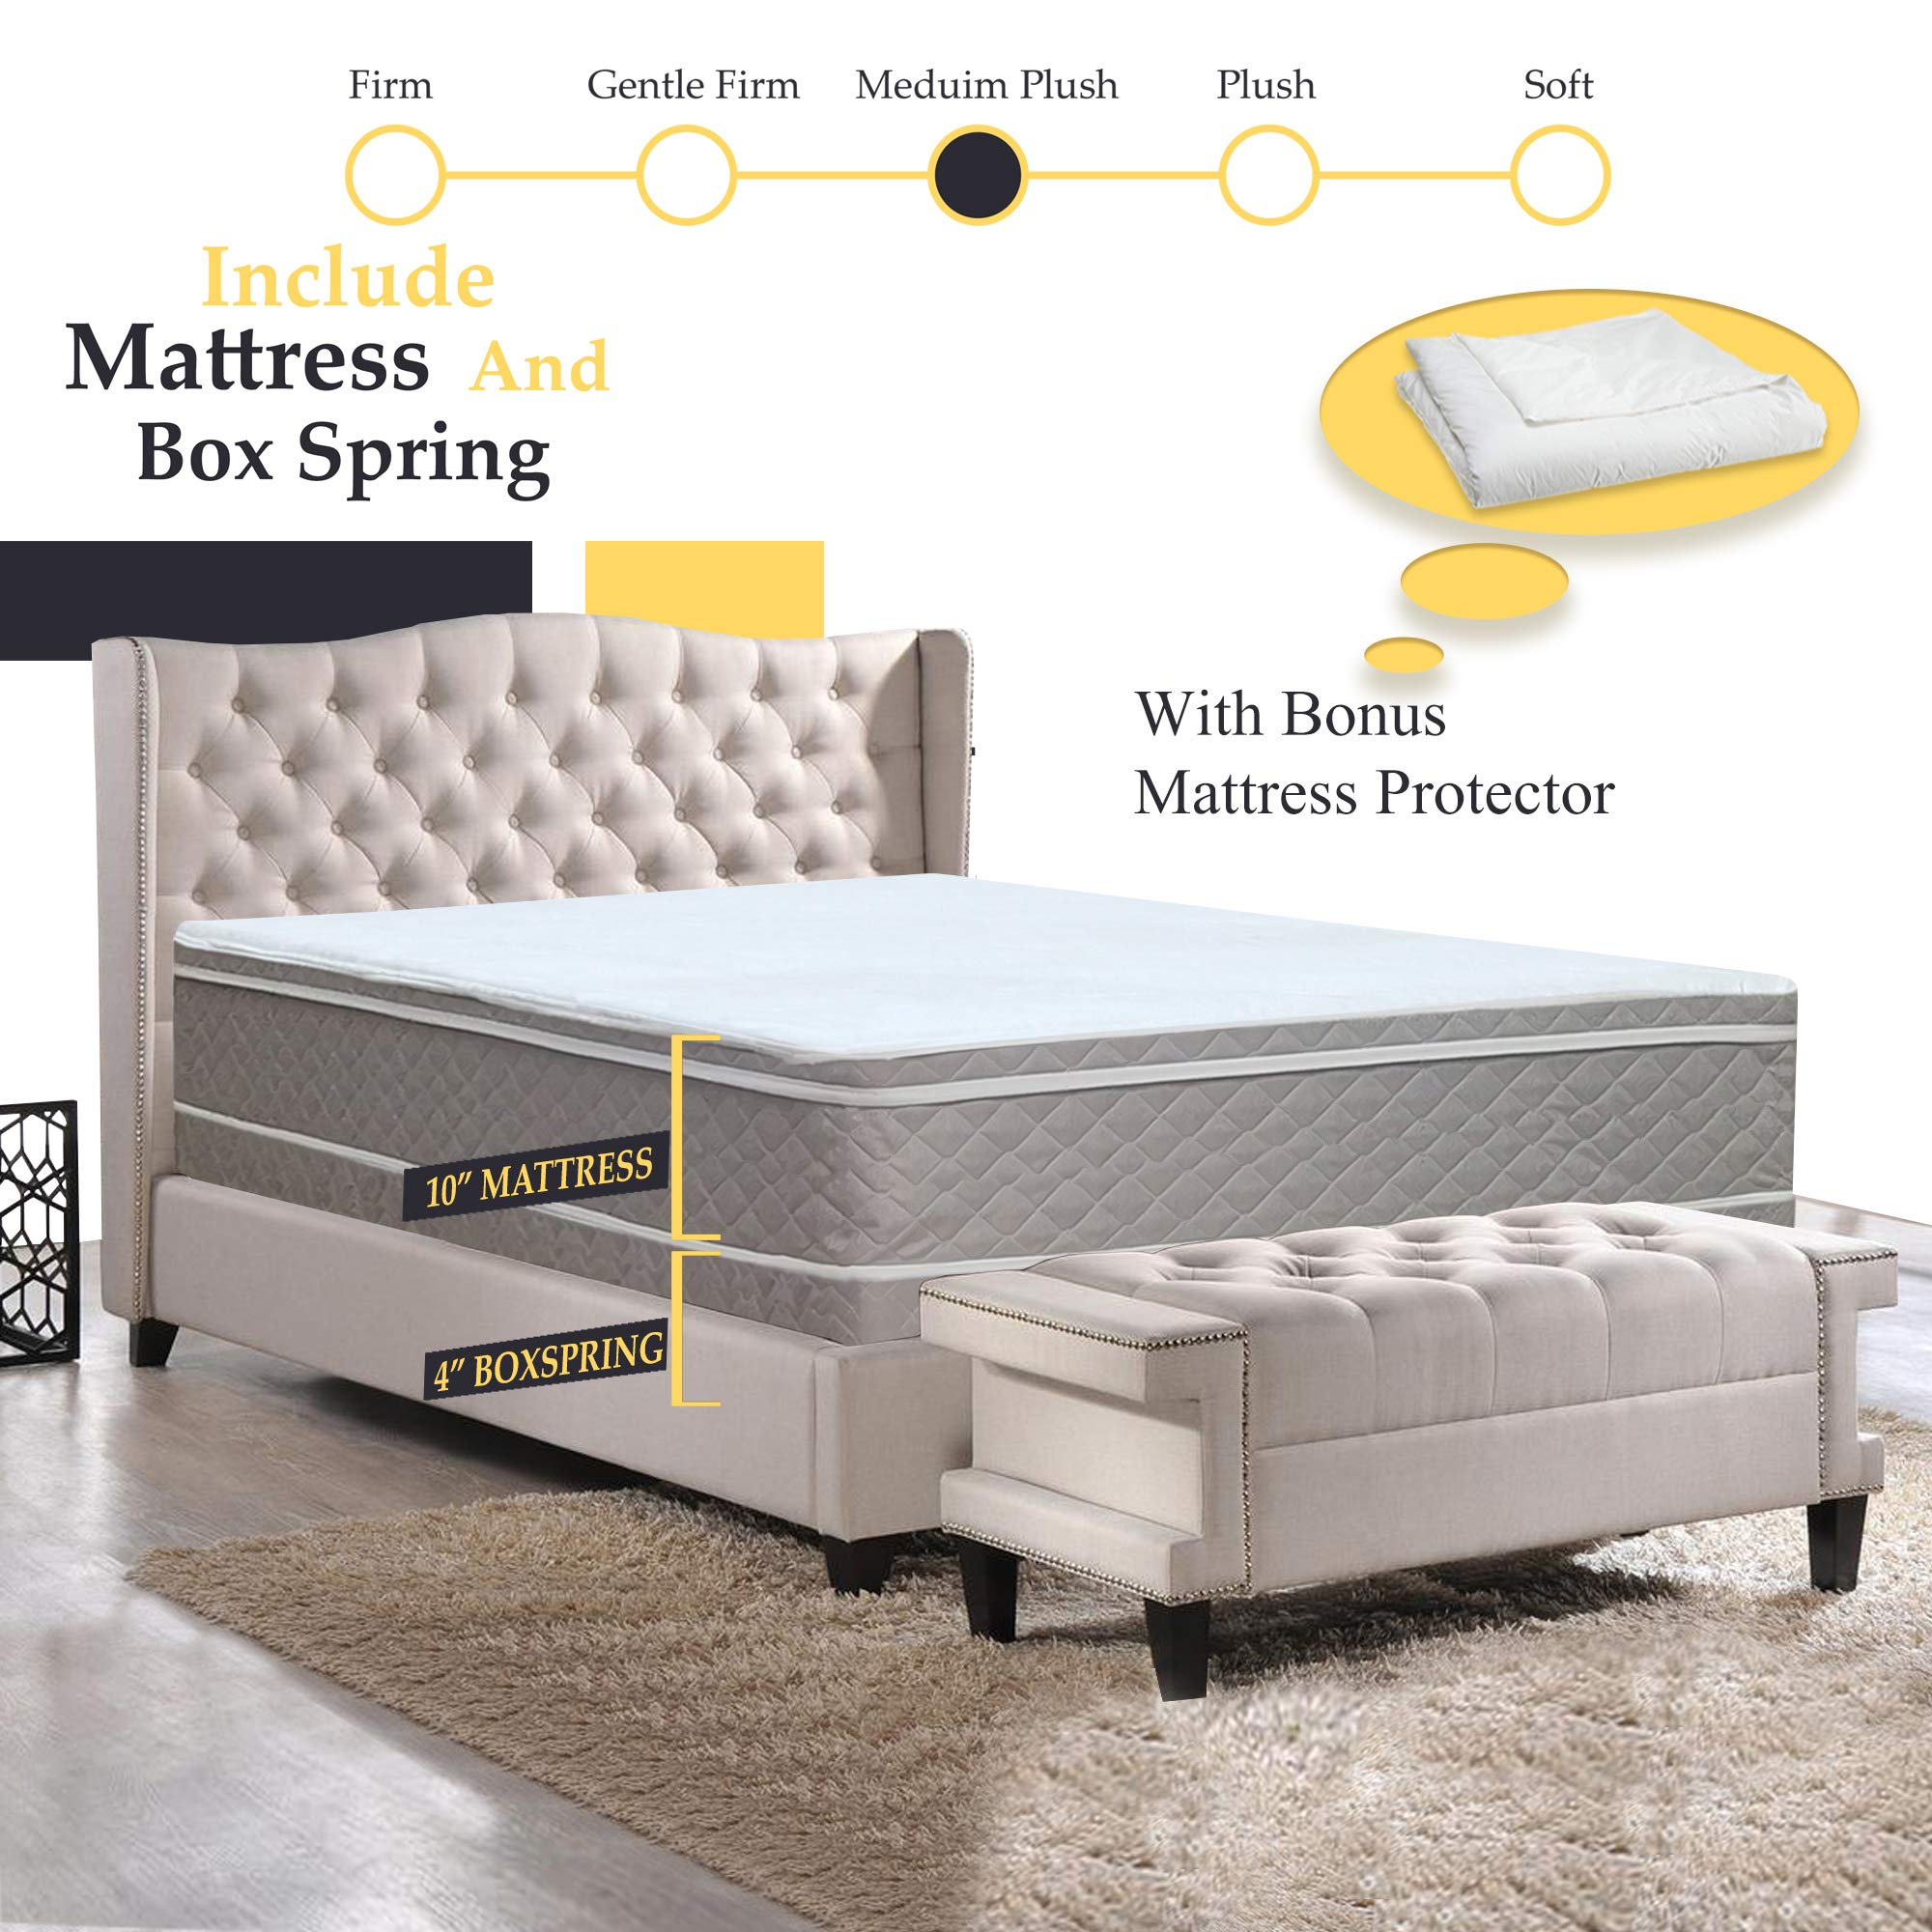 GREATON 10-Inch Meduim Plush Eurotop Pillowtop Innerspring Mattress And 4'' Low Profile Split Wood Traditional Box Spring/Foundation Set, Good For The Back, King, 78'' x 79'' by GREATON